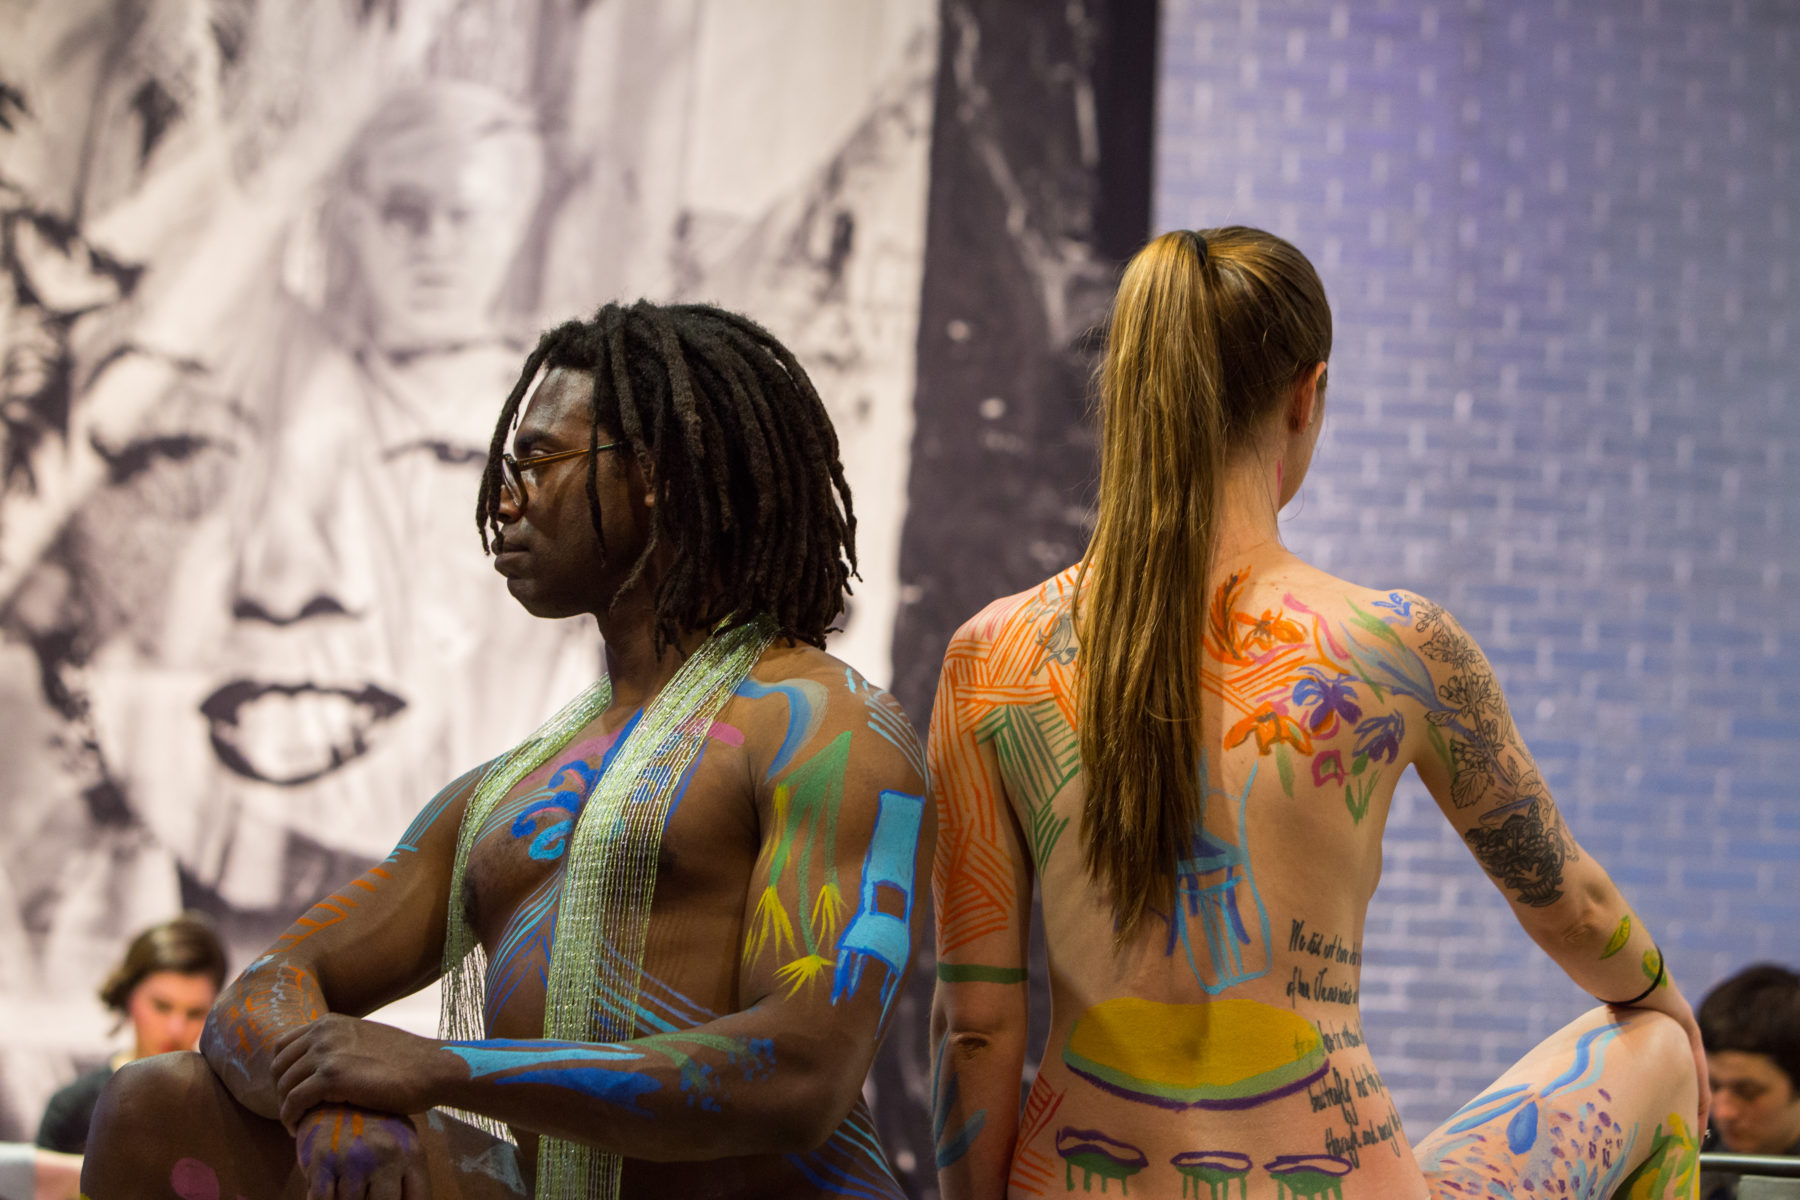 Two models posing in The Warhol entrance space. The model on the left is an African-American man, right hand resting on his propped up knee, his left hand grabbing his right wrist. He is standing back to back with a Caucasian woman, her left arm by her side and right hand grabbing her right propped up knee. Both models have a variety of small pictures painted on them with colorful body paint.